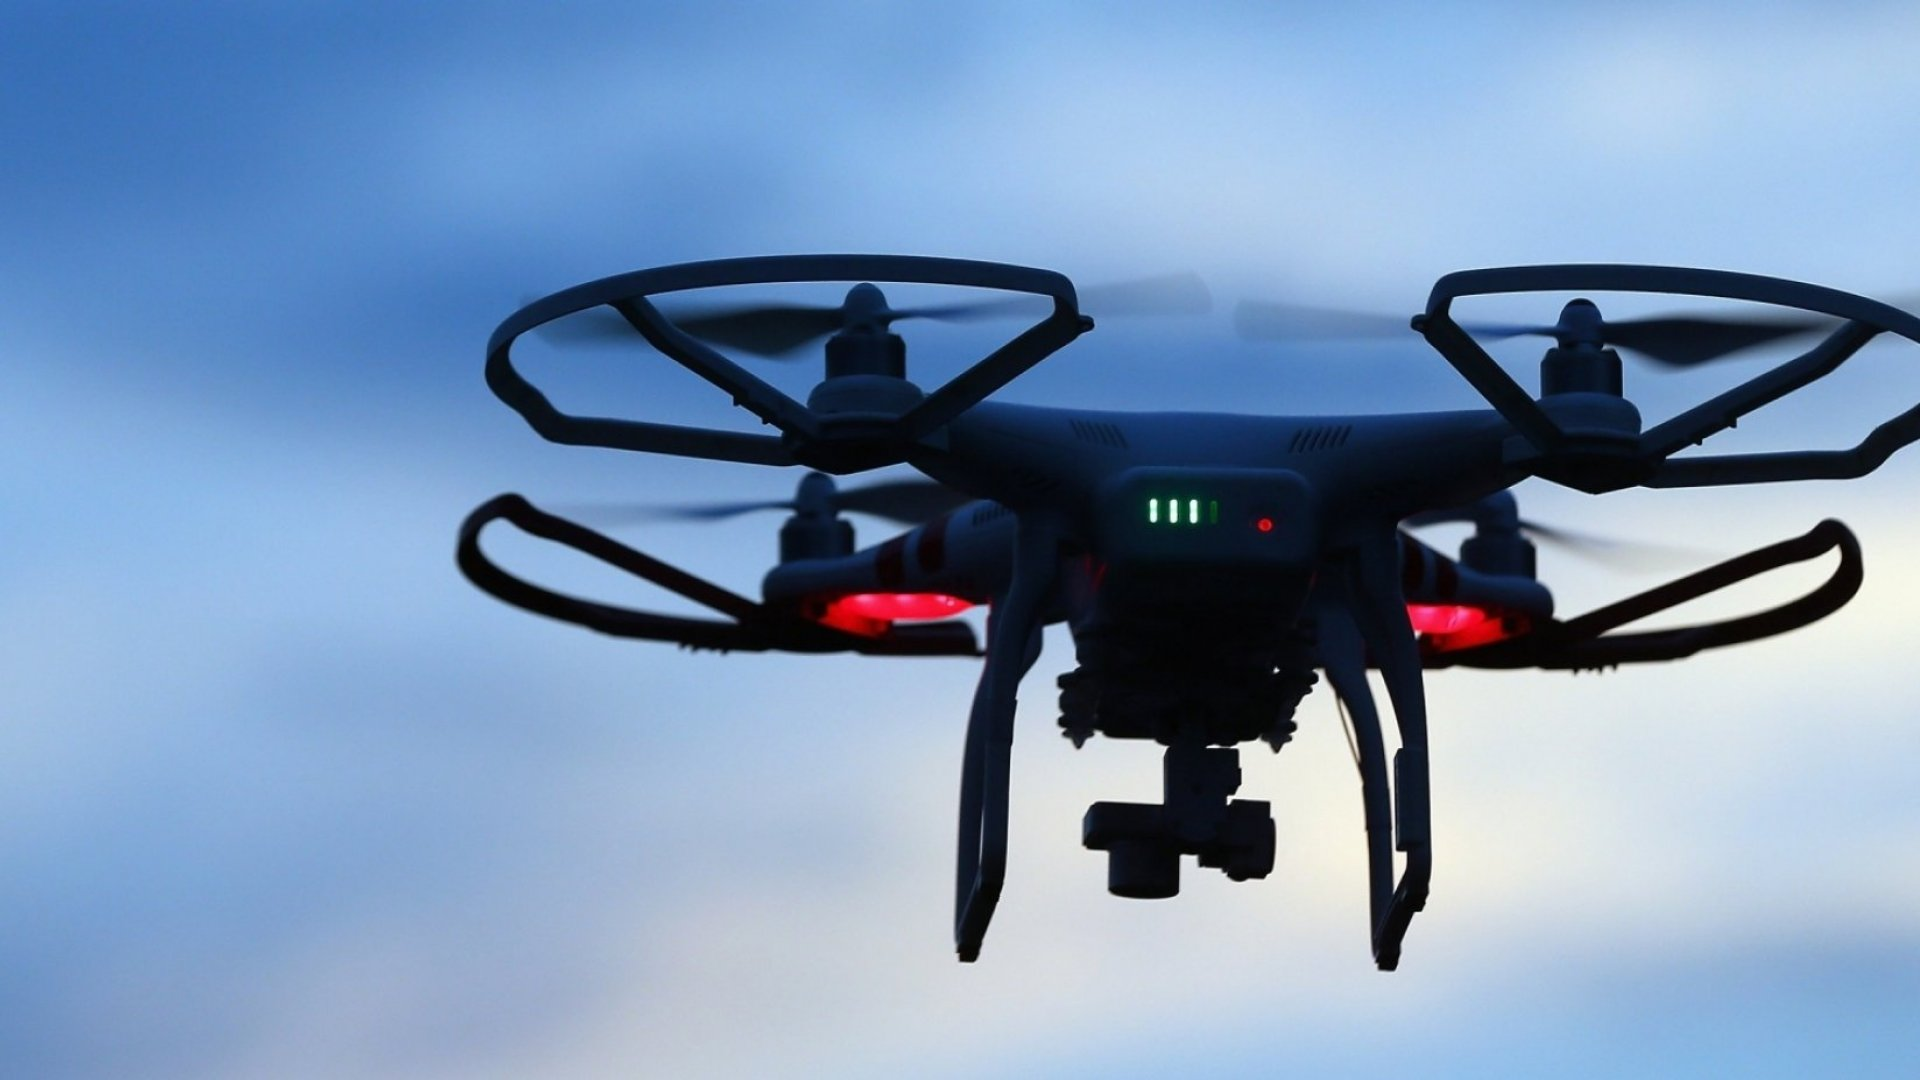 Coming Soon From Apple: A Drone That Can Fly Itself (and Follow Humans)